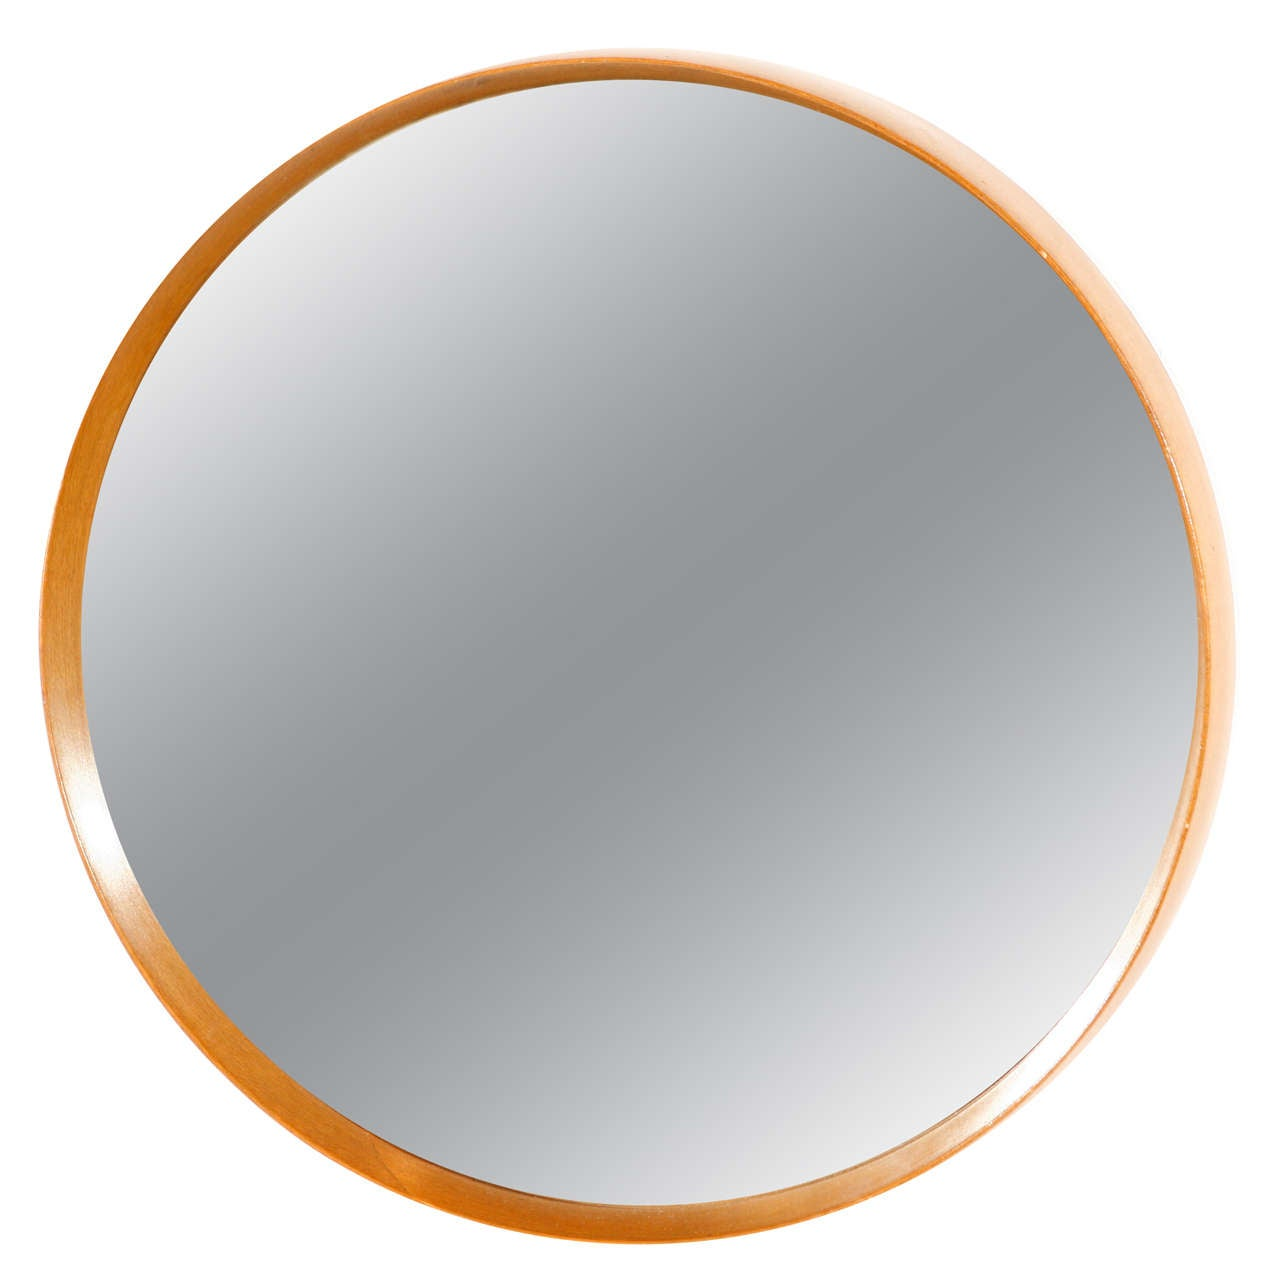 This italian circular wooden wall mirror is no longer available - Italian Wood Framed Round Wall Mirror Small 1